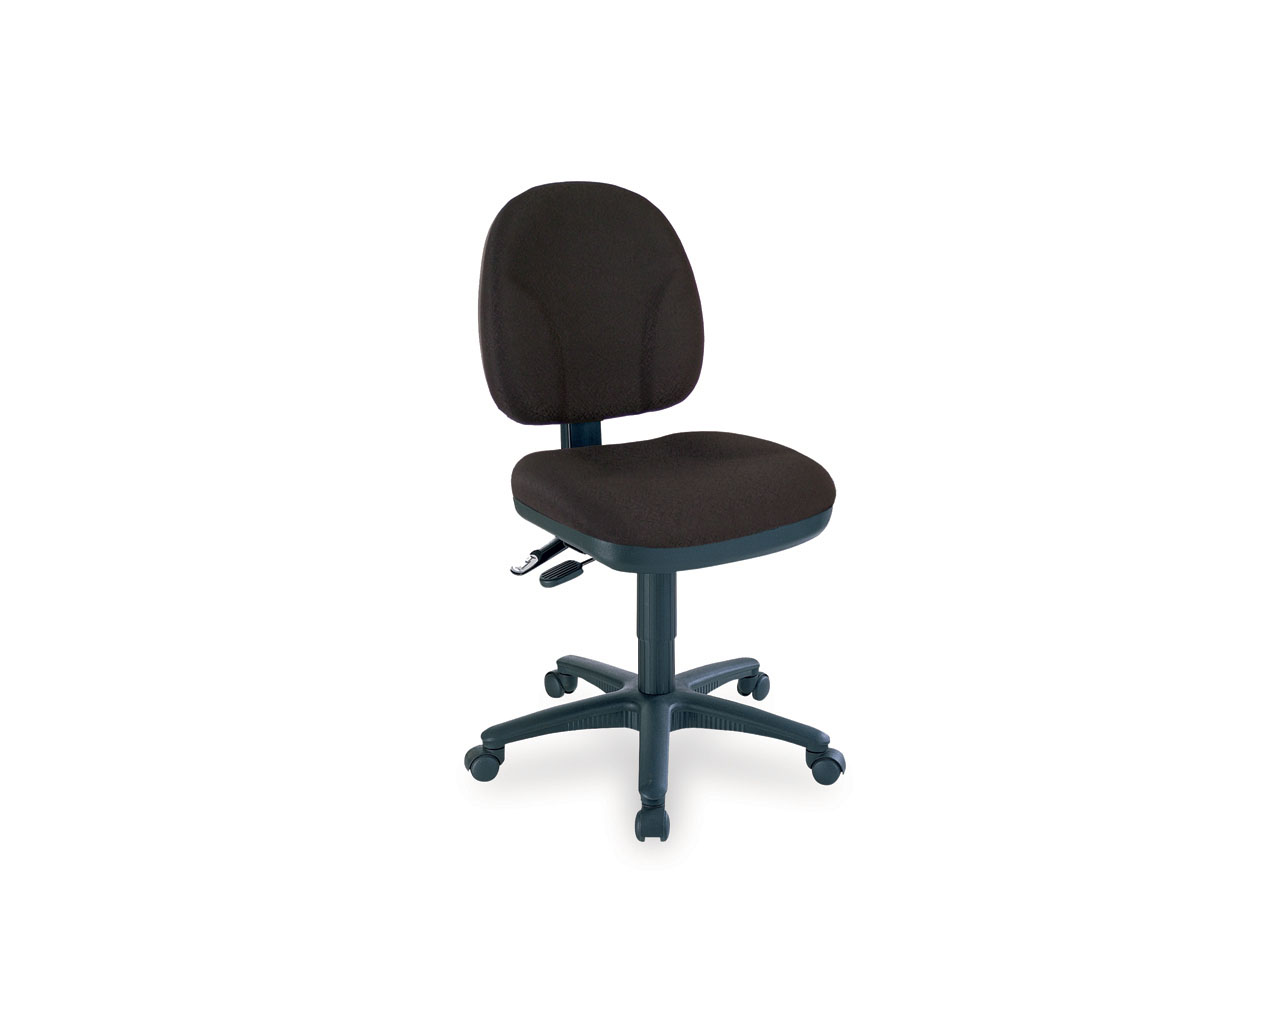 Office Chairs Seating Ergonomic Chairs Desk Chairs